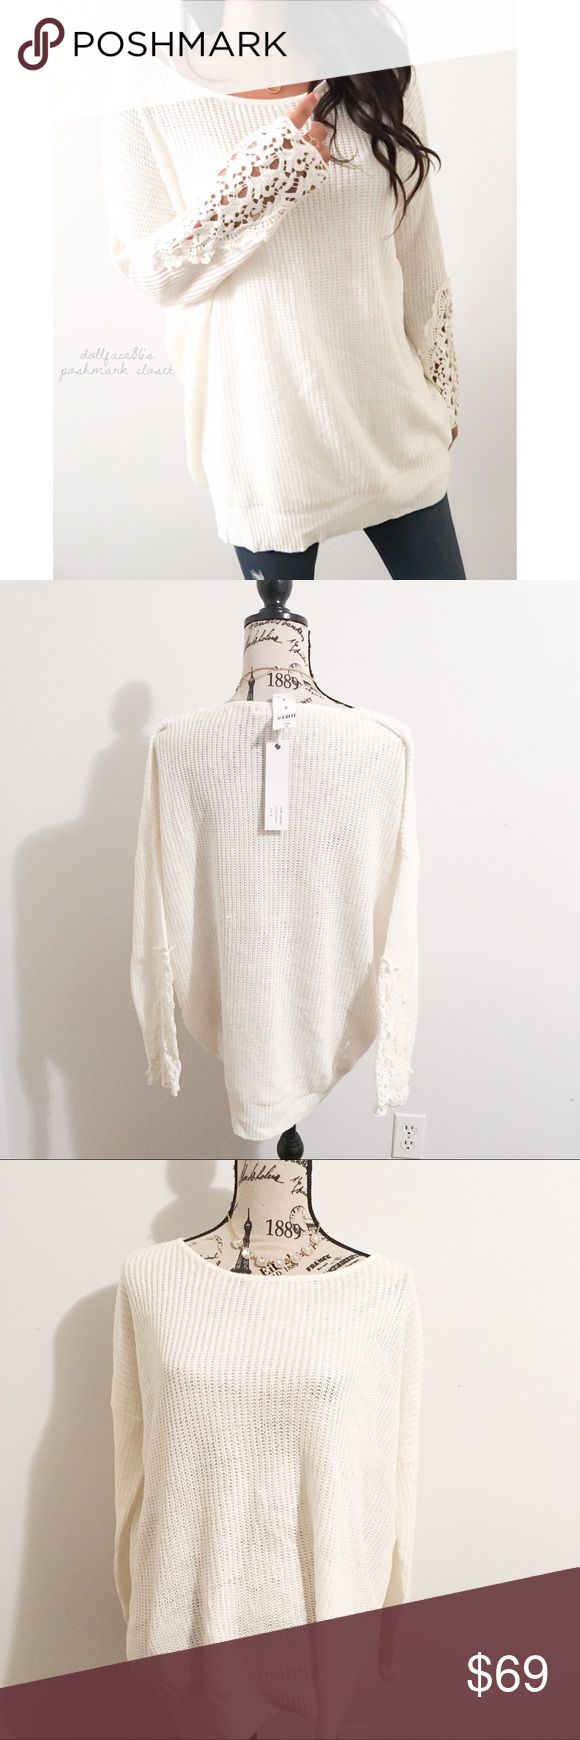 """NWT Millau Cream Lace Cuff Sweater ✦   ✦{I am not a professional photographer, actual color of item may vary ➾slightly from pics}  ❥chest:27"""" ❥waist:26.5"""" ❥length:28"""" ❥sleeves:26.5"""" collar-cuff ➳material/care:cotton/machine wash  ➳fit:oversized in my opinion  ➳condition:new w/tag, but has a snag on back of knit   ✦20% off bundles of 3/more items ✦No Trades  ✦NO HOLDS ✦No lowball offers/sales are final  ✦‼️BE A RESPONSIBLE BUYER PLS ASK QUESTIONS/USE MEASUREMENTS TO MAKE SURE THIS WILL WORK…"""